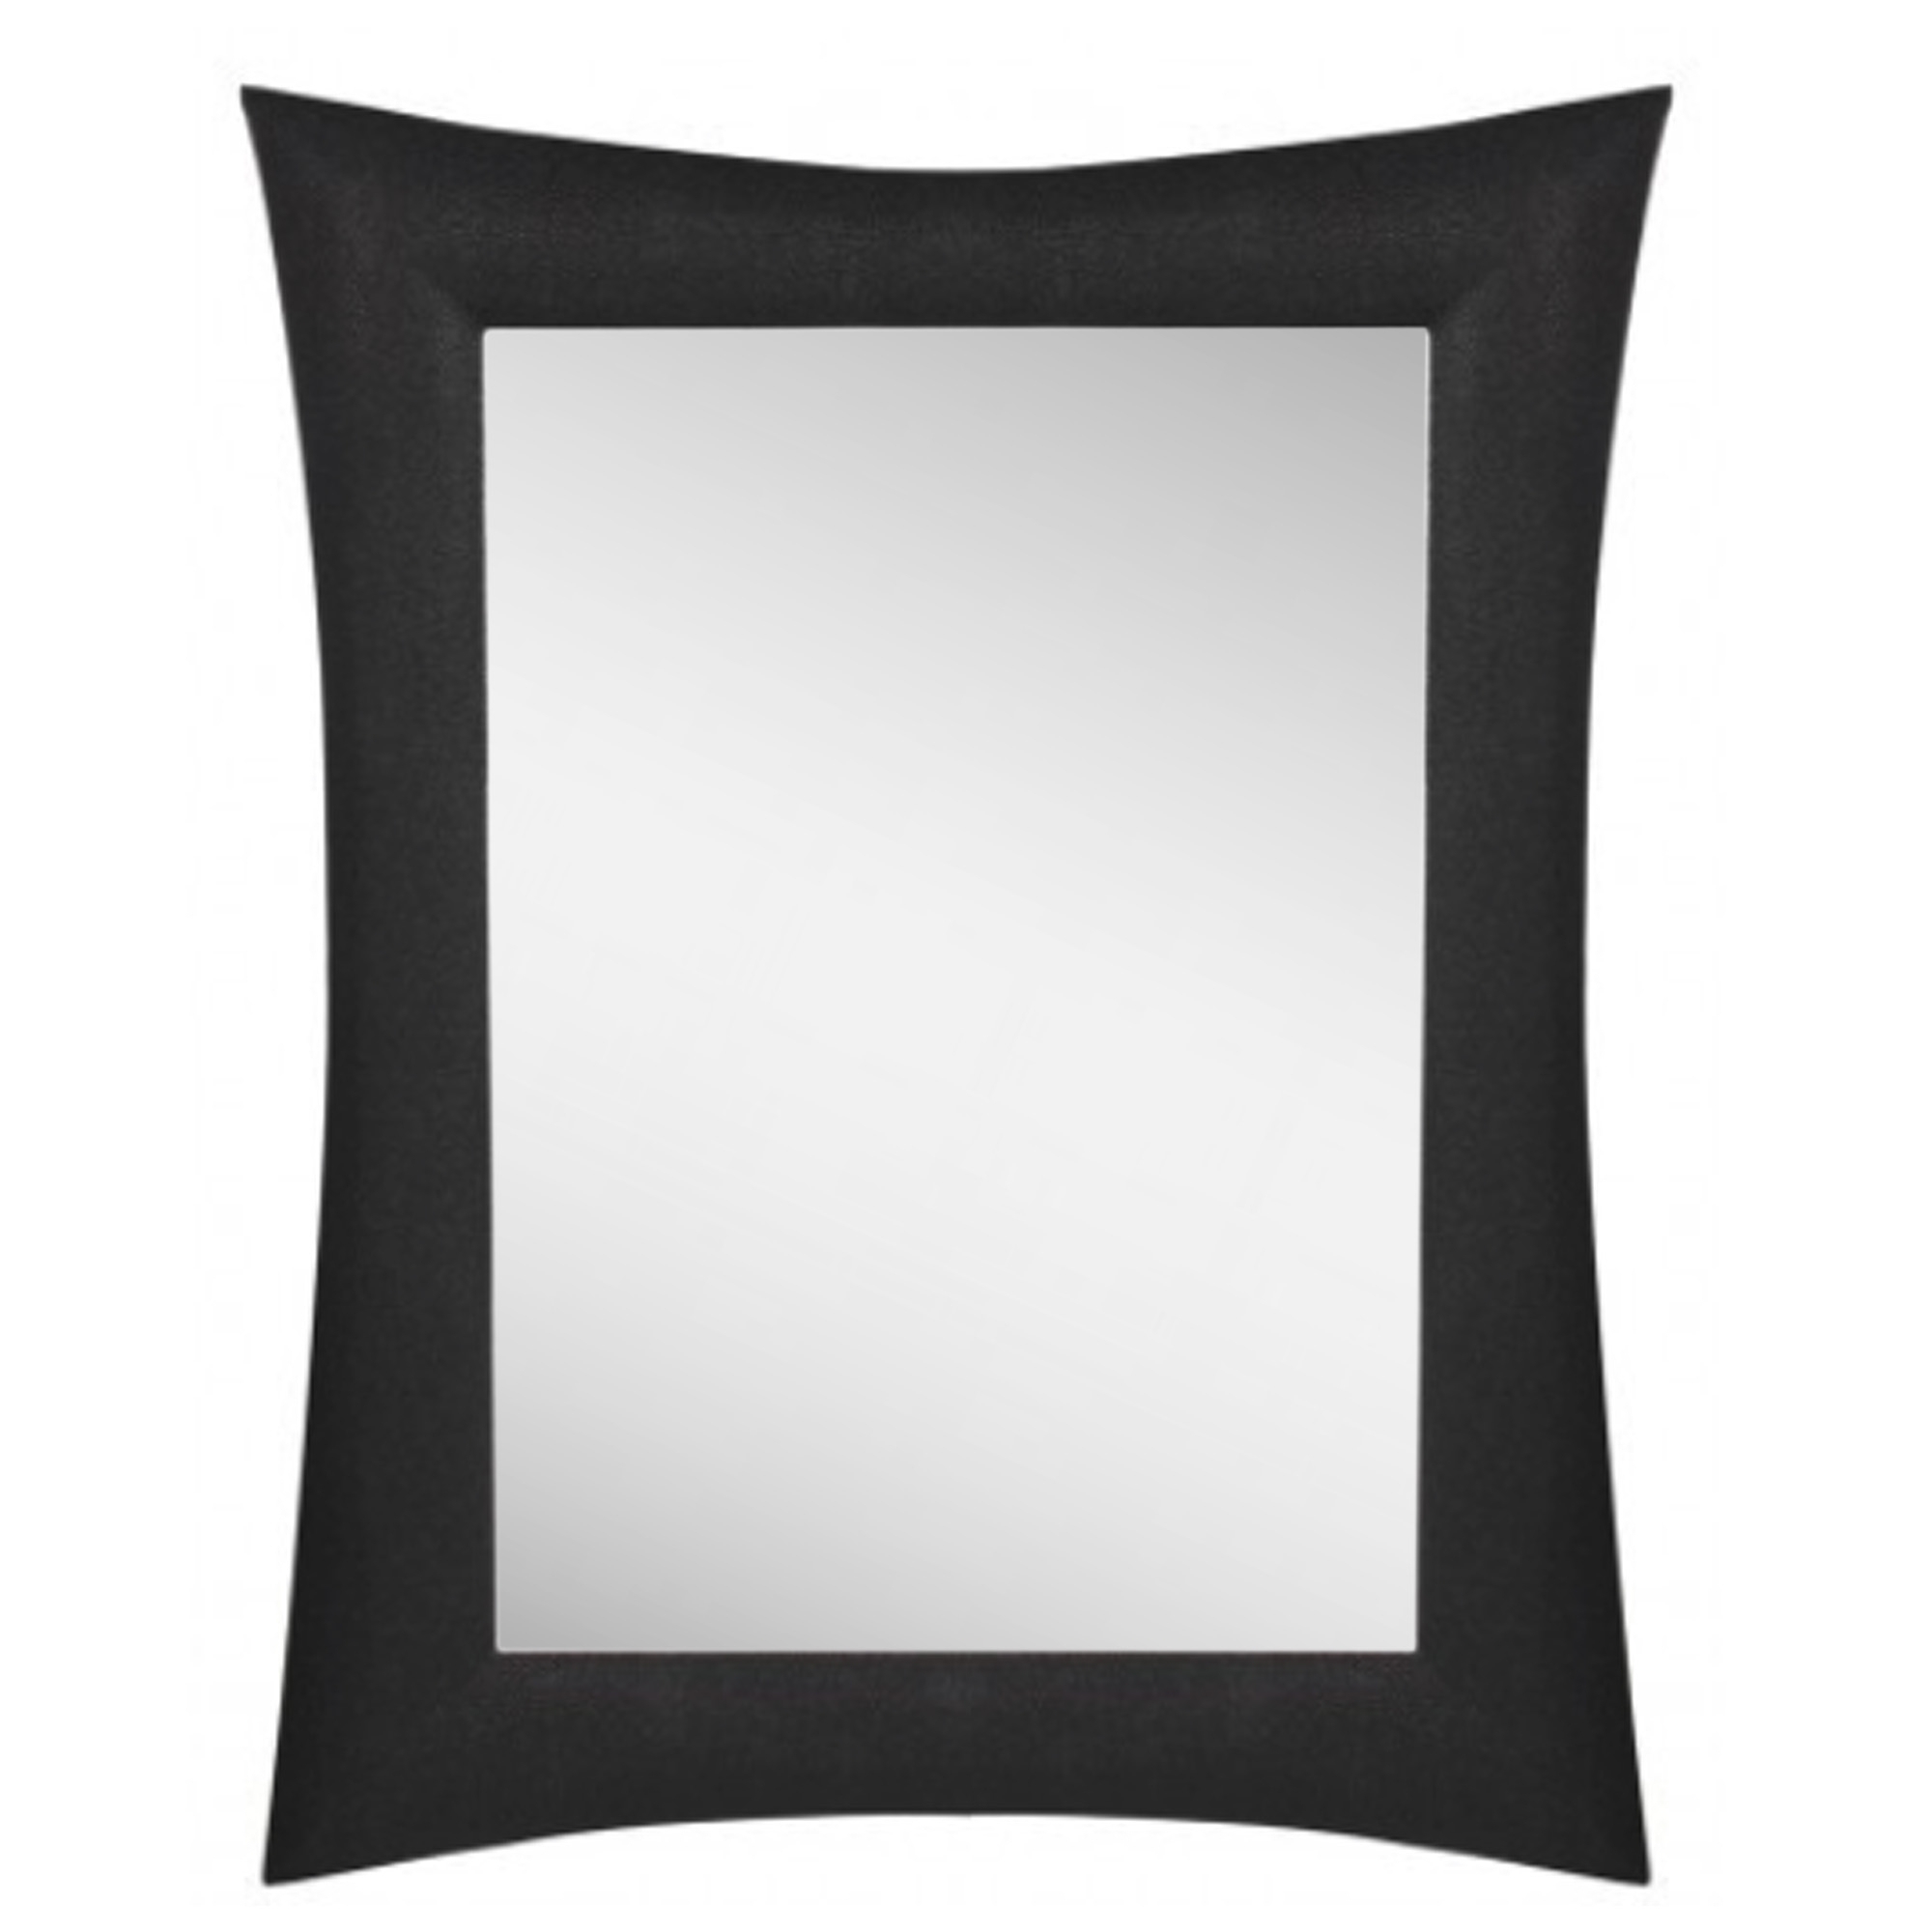 Contemporary Black Wall Mirrors With Regard To Most Recently Released Lakeland Black Wall Mirror (View 9 of 20)